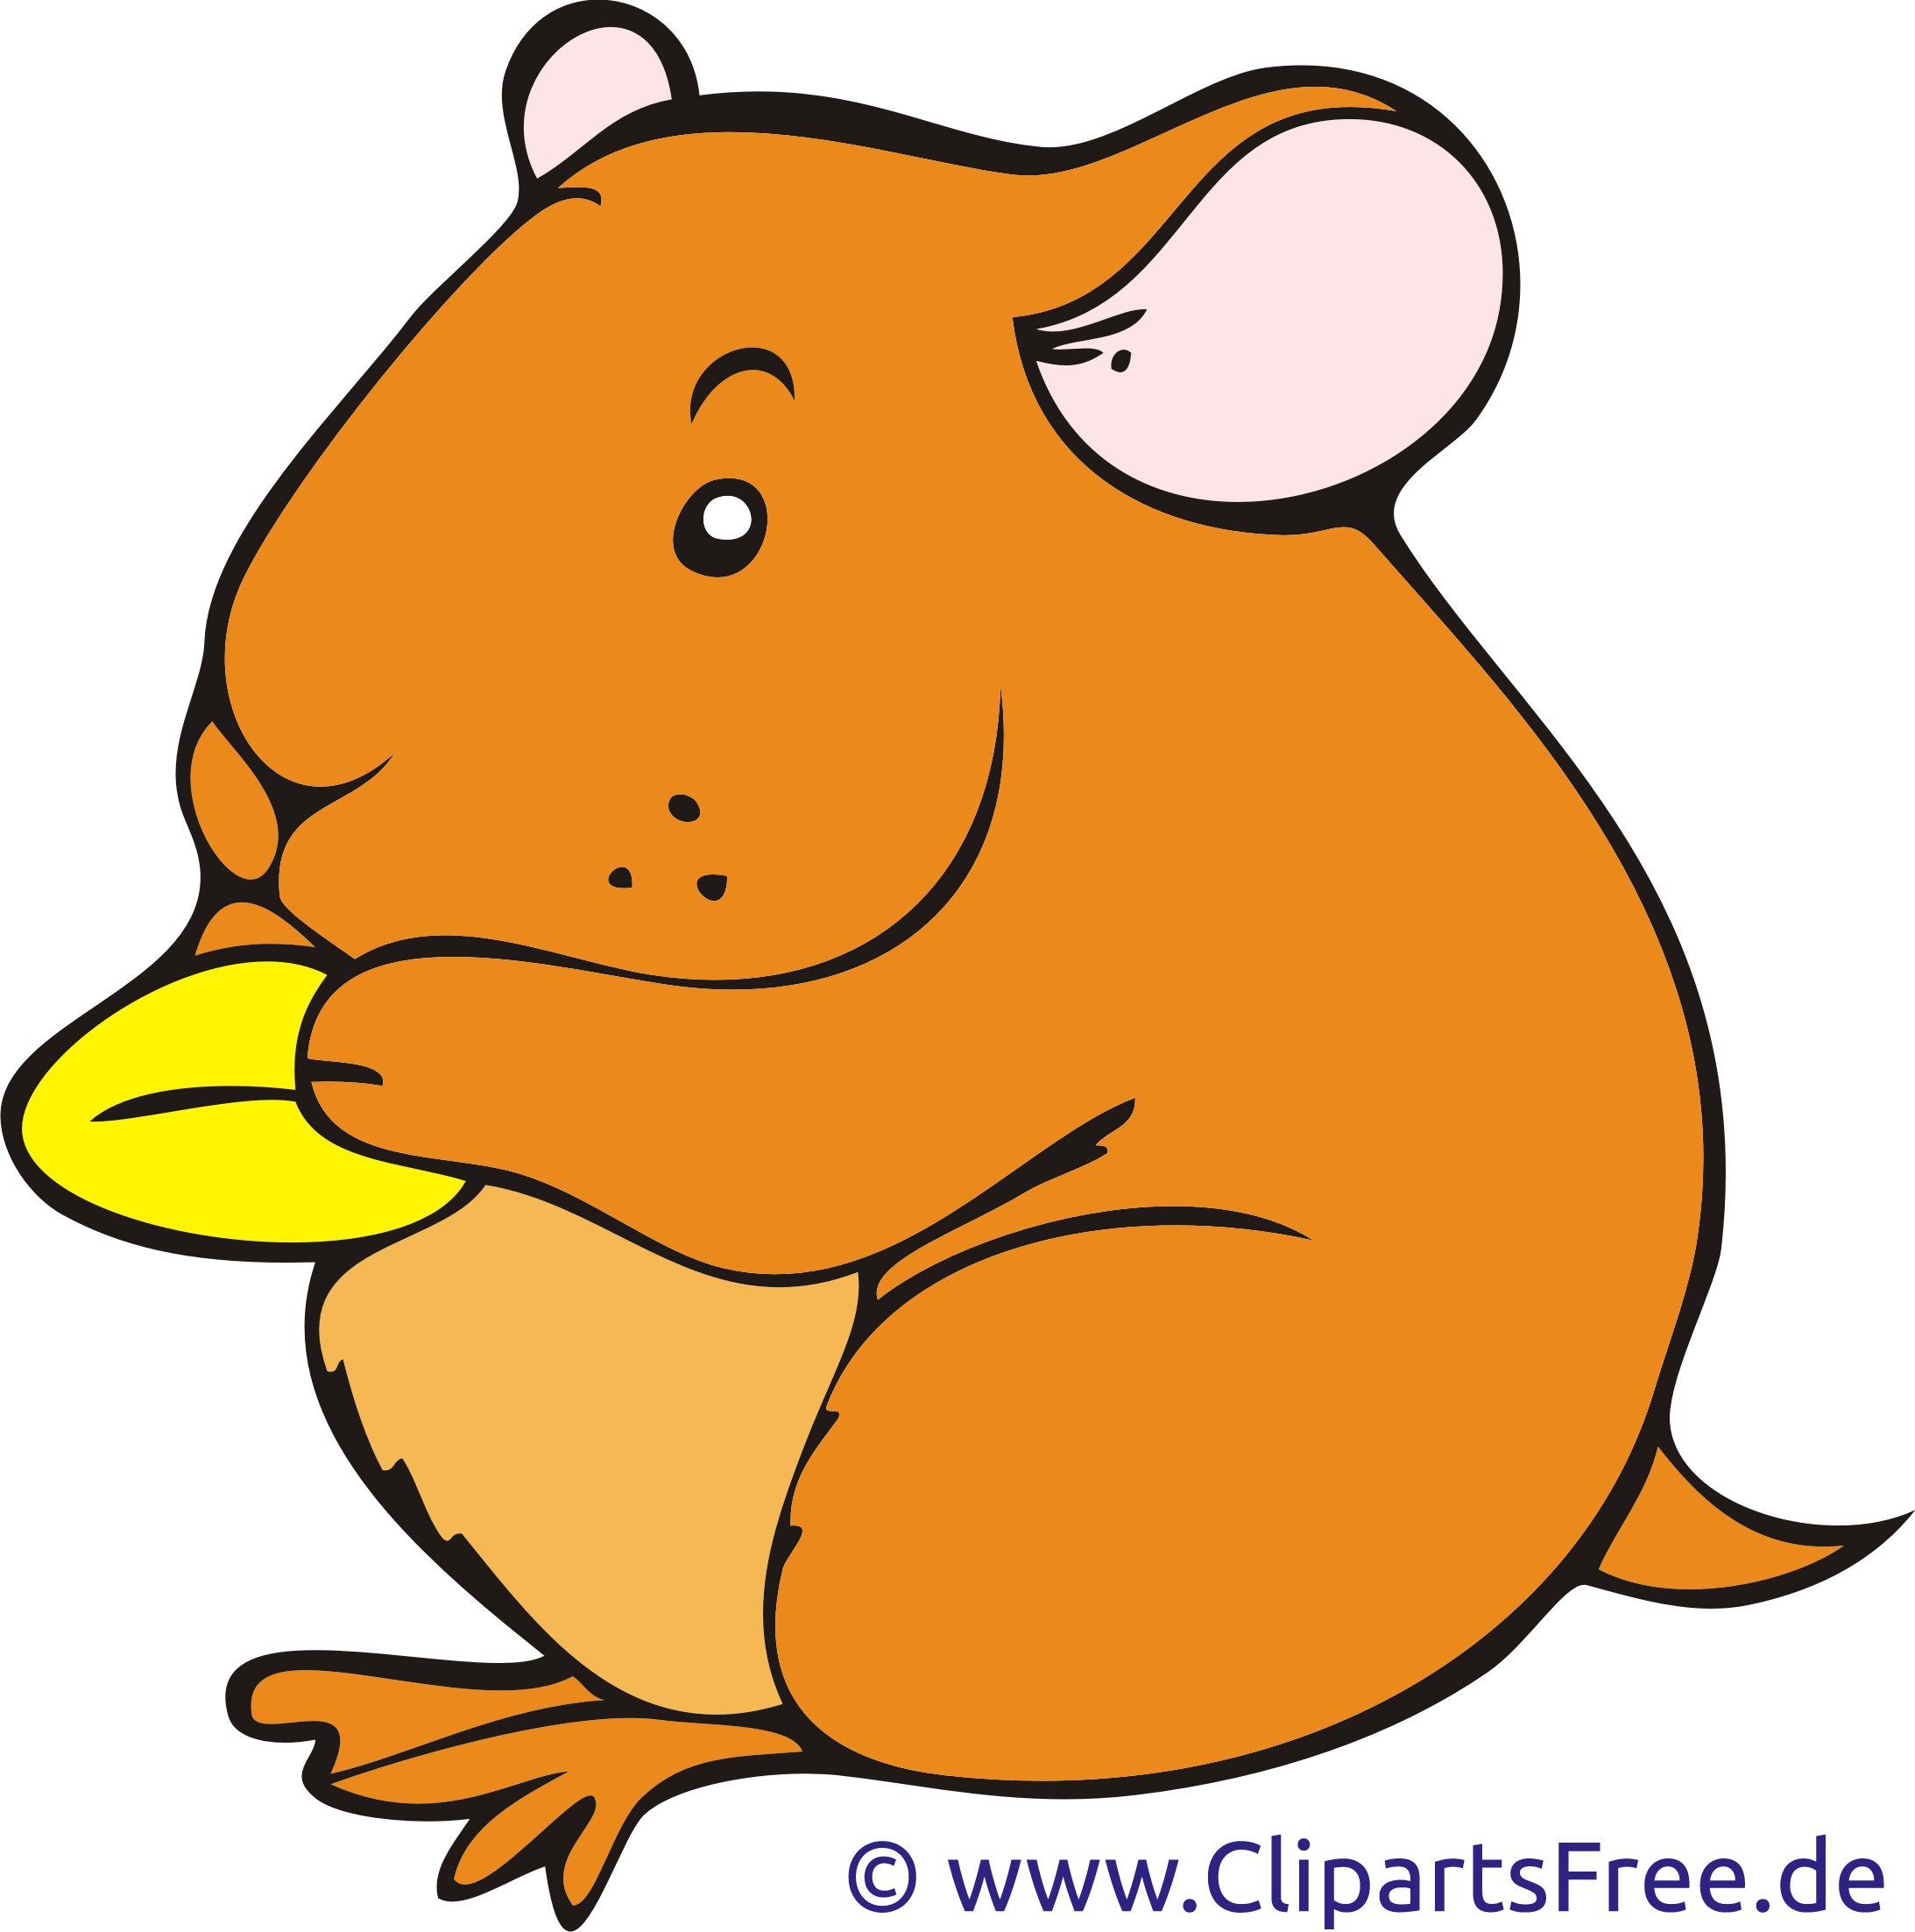 Hamster clipart real. Clip art library food